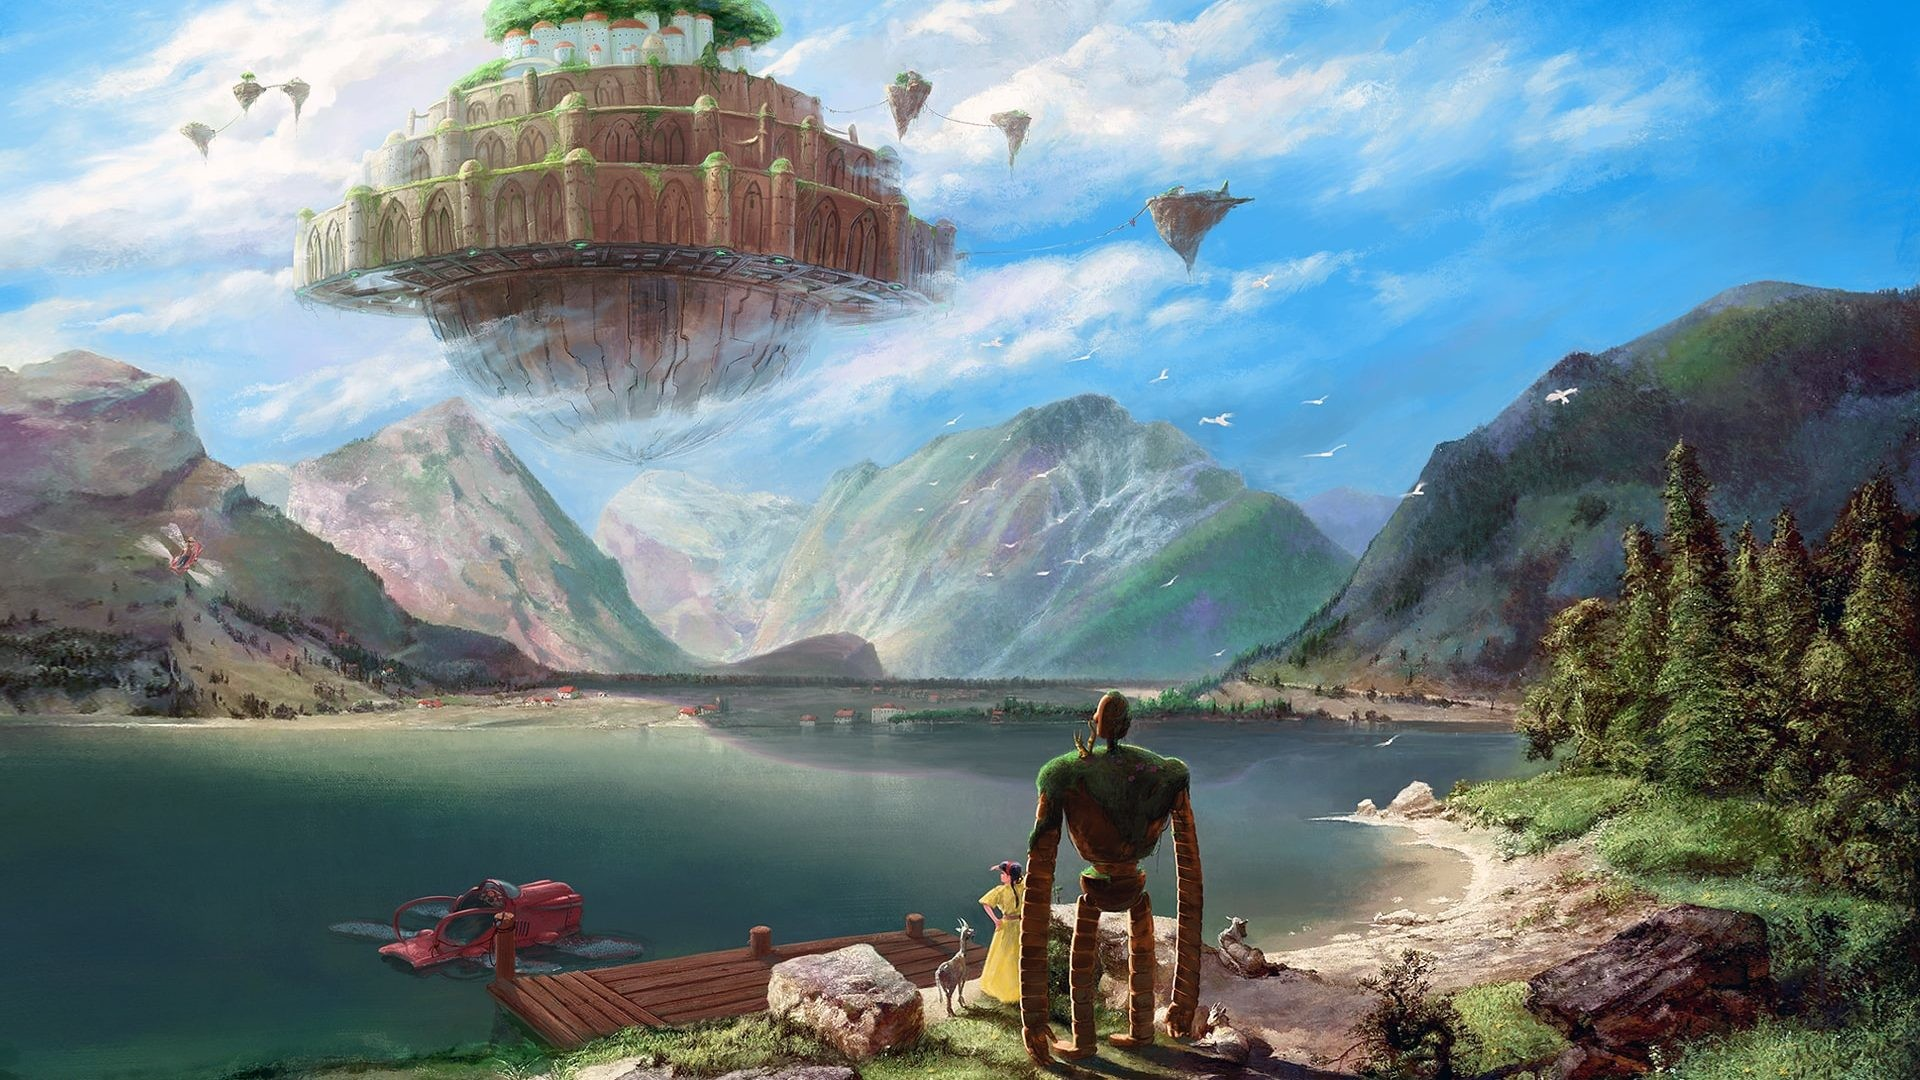 1920x1080 laputa castle in the sky studio ghibli HD Wallpaper - M9Themes